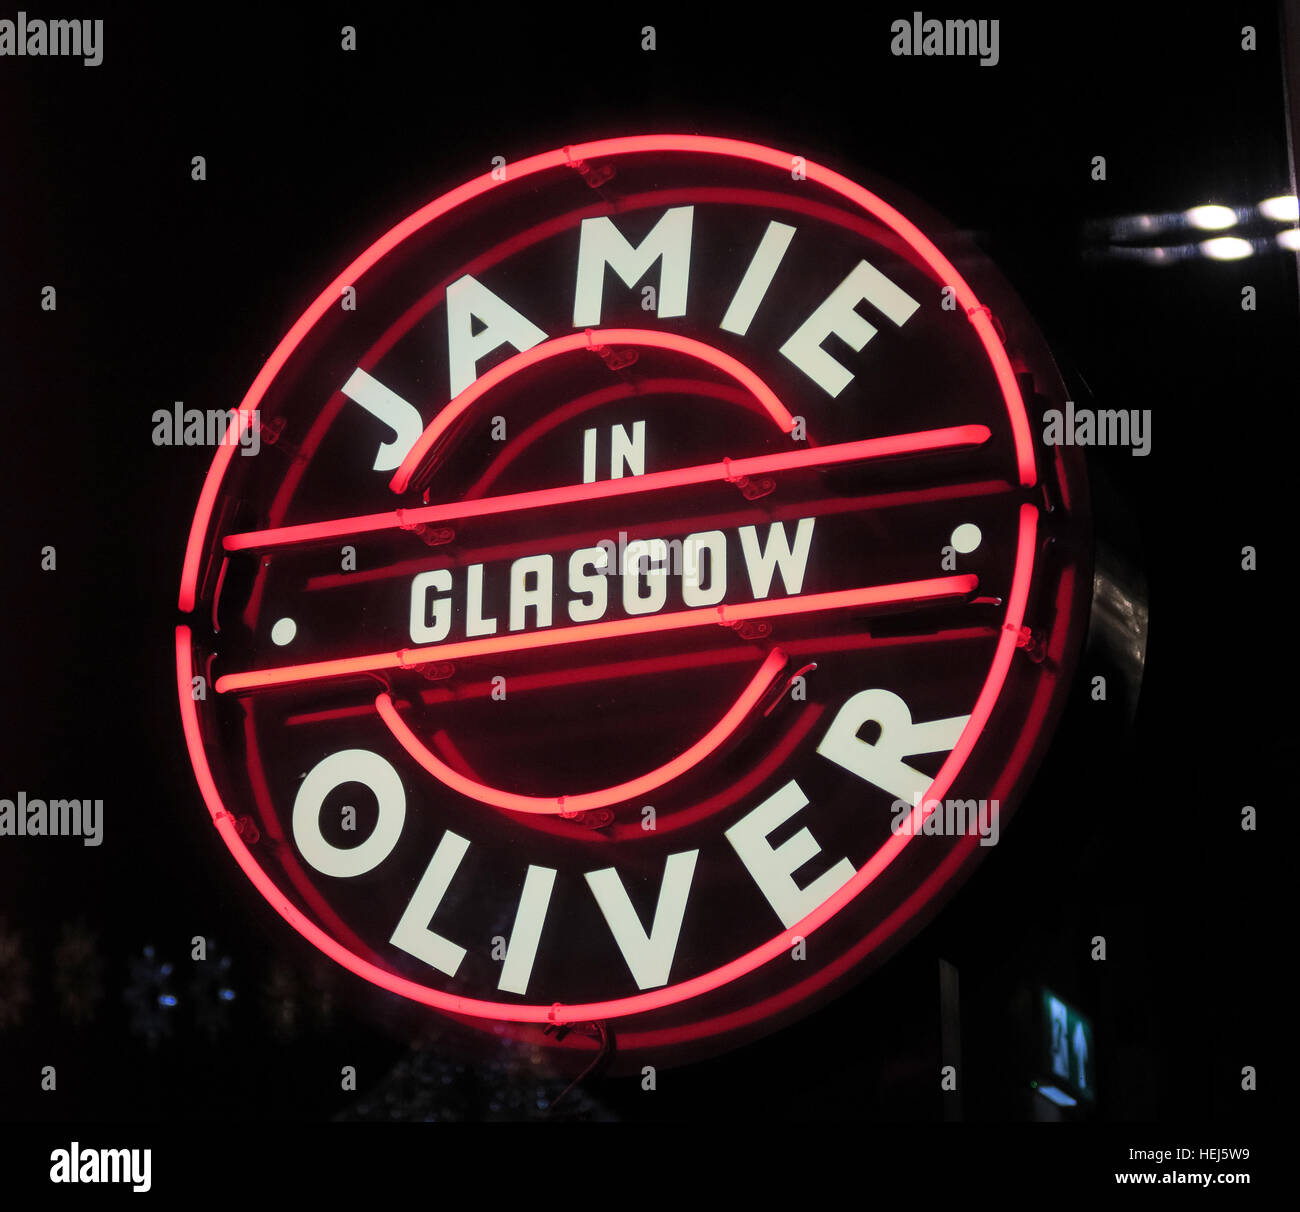 Window,red,orange,city,centre,city centre,restaurant,Italian,food,eating,out,Jamie Oliver in Glasgow,neon,sign,menu,G2,George Square,George,Square,Sq,GoTonySmith,@HotpixUK,Tony,Smith,UK,GB,Great,Britain,United,Kingdom,Scots,Scottish,British,Scotland,Glasgow,Greater,problem,with,problem with,issue with,City,Centre,cities,Urban,Urbanist,town,infrastructure,transport,tour,tourism,tourists,urban,attraction,attractions,Buy Pictures of,Buy Images Of,Images of,Stock Images,Tony Smith,United Kingdom,Great Britain,Greater Glasgow,British Isles,Glasgow City Centre,City Centre